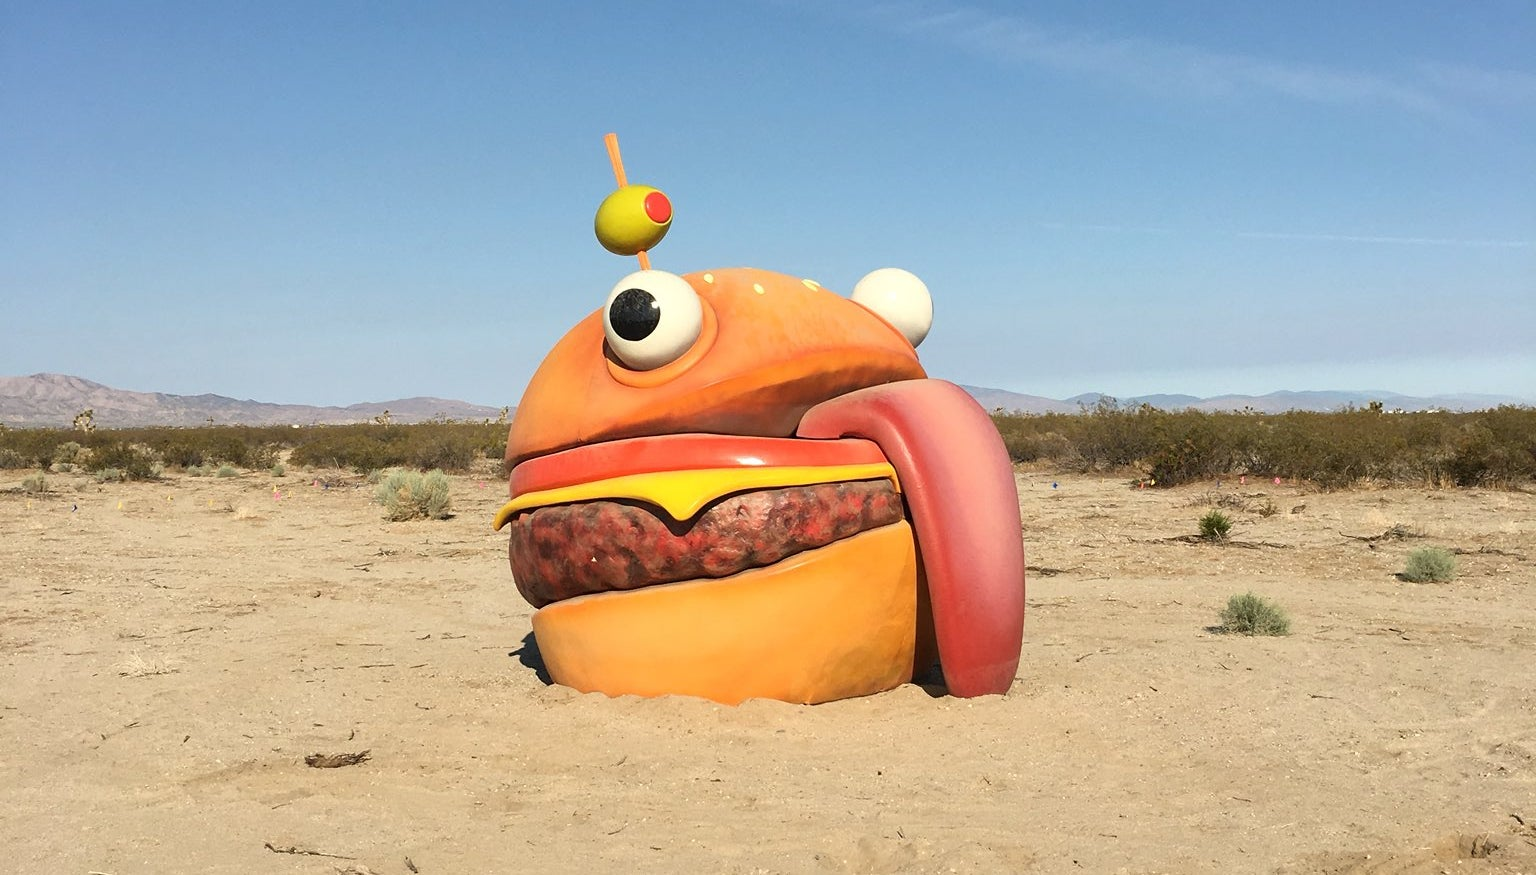 Fortnite Burger Disappears From Map, Reappears In Real-Life Desert